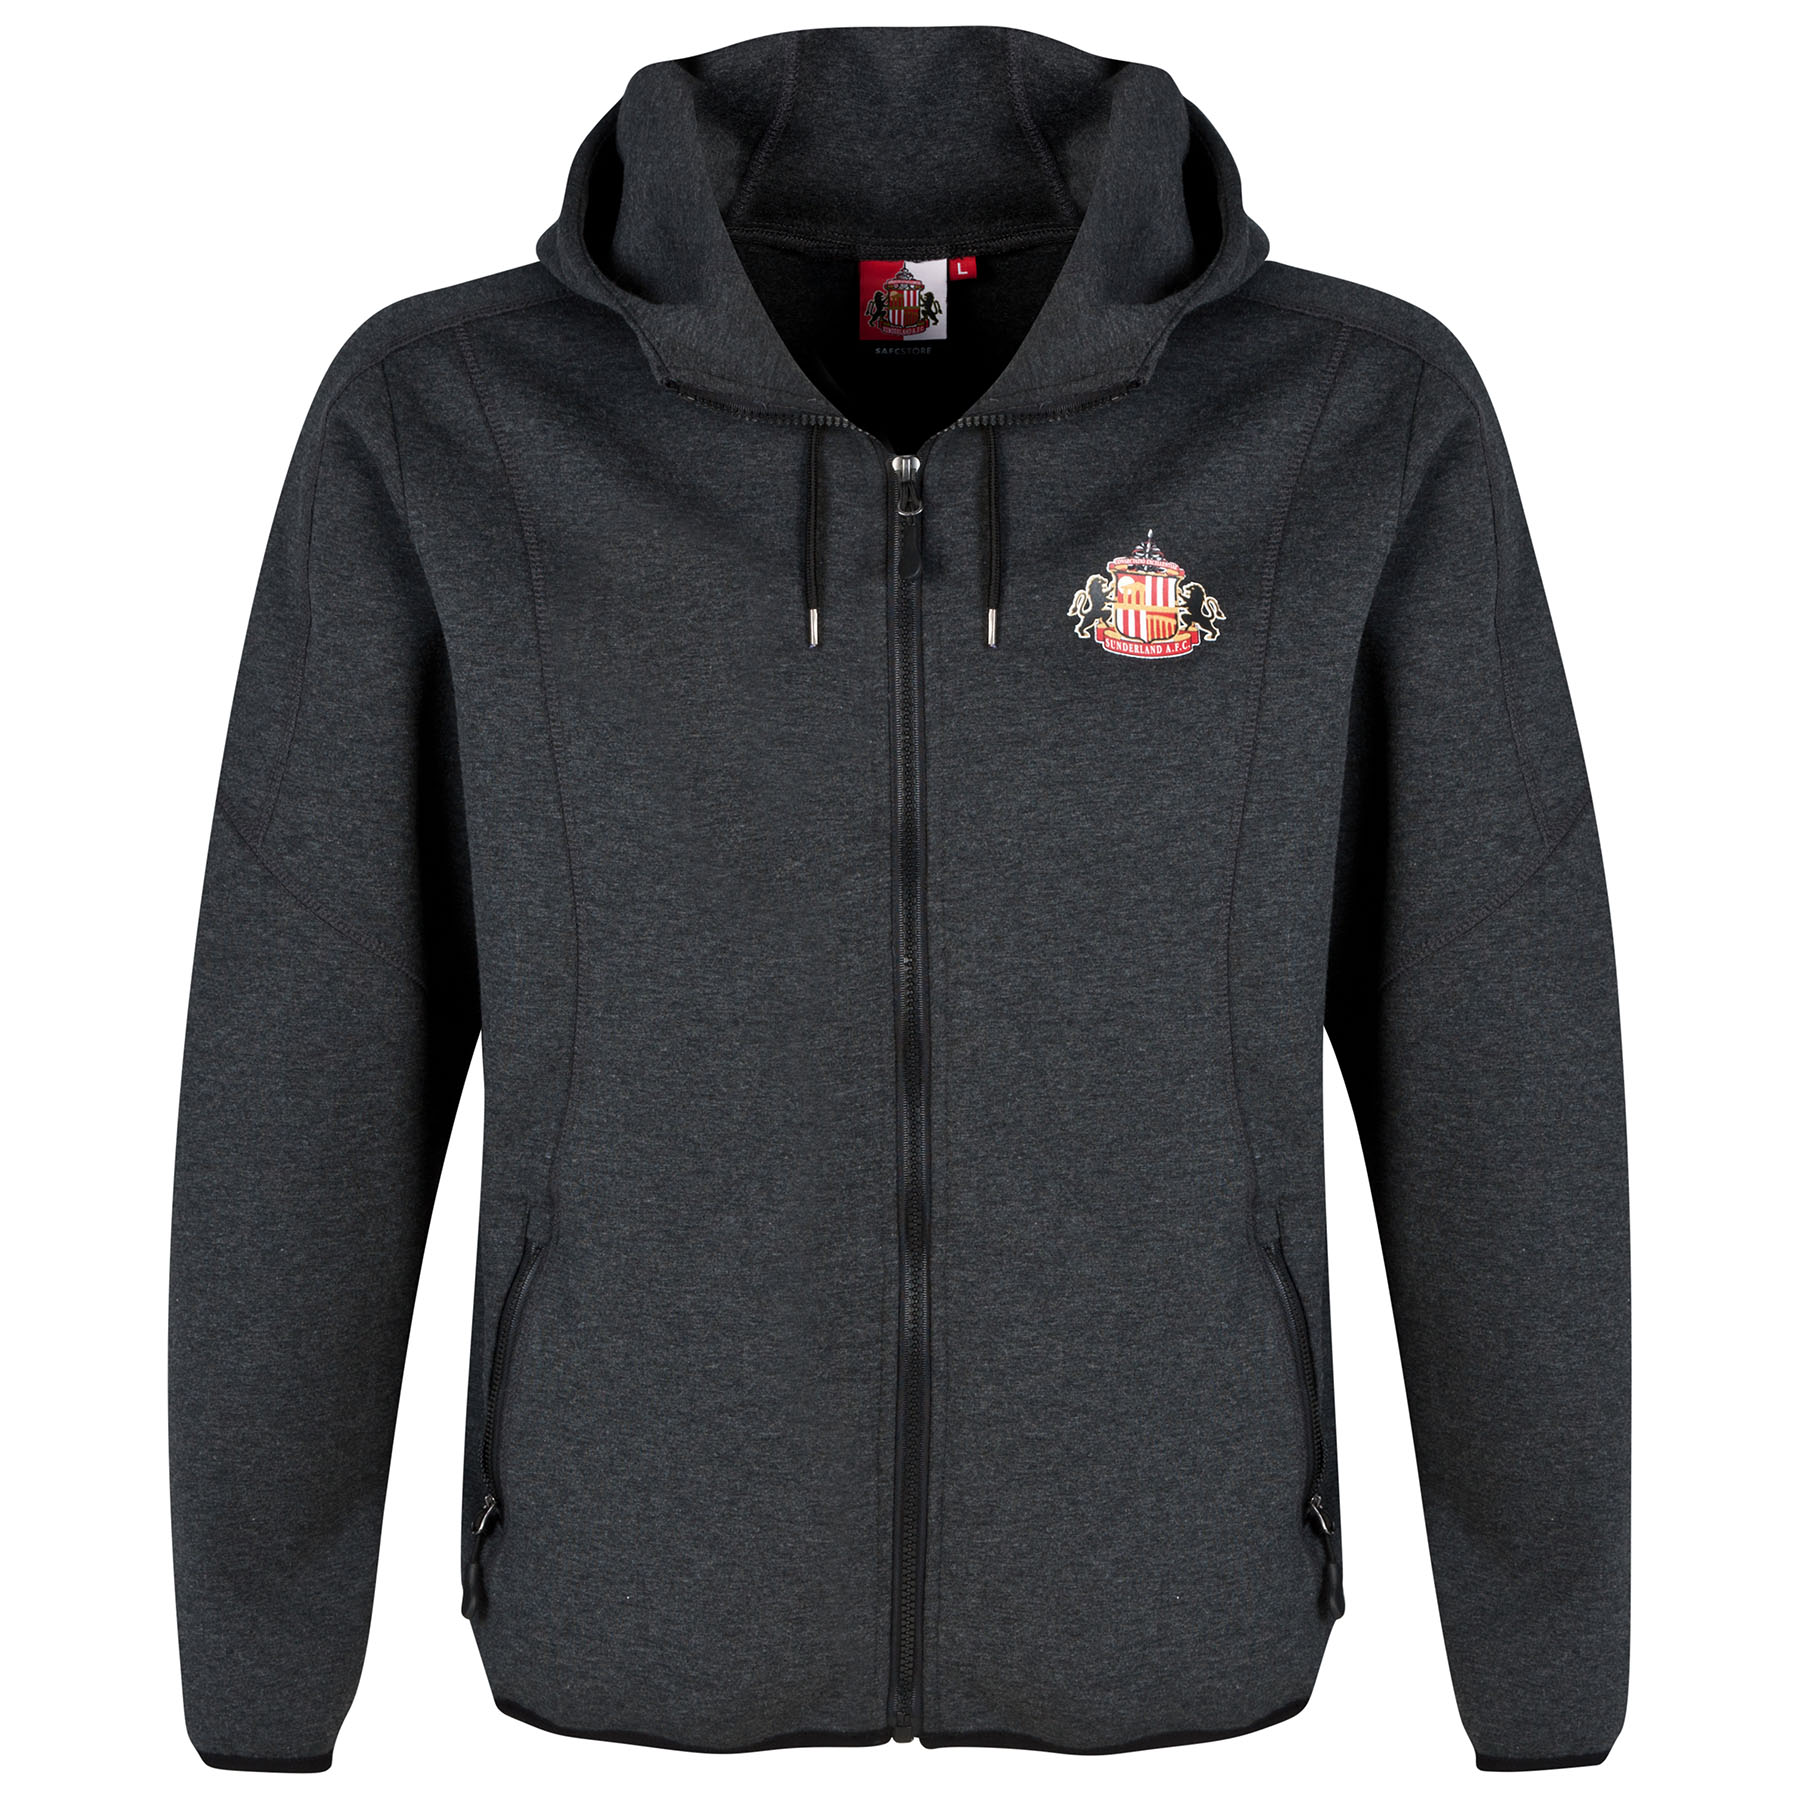 Sunderland Performance Hoodie - Charcoal - Mens